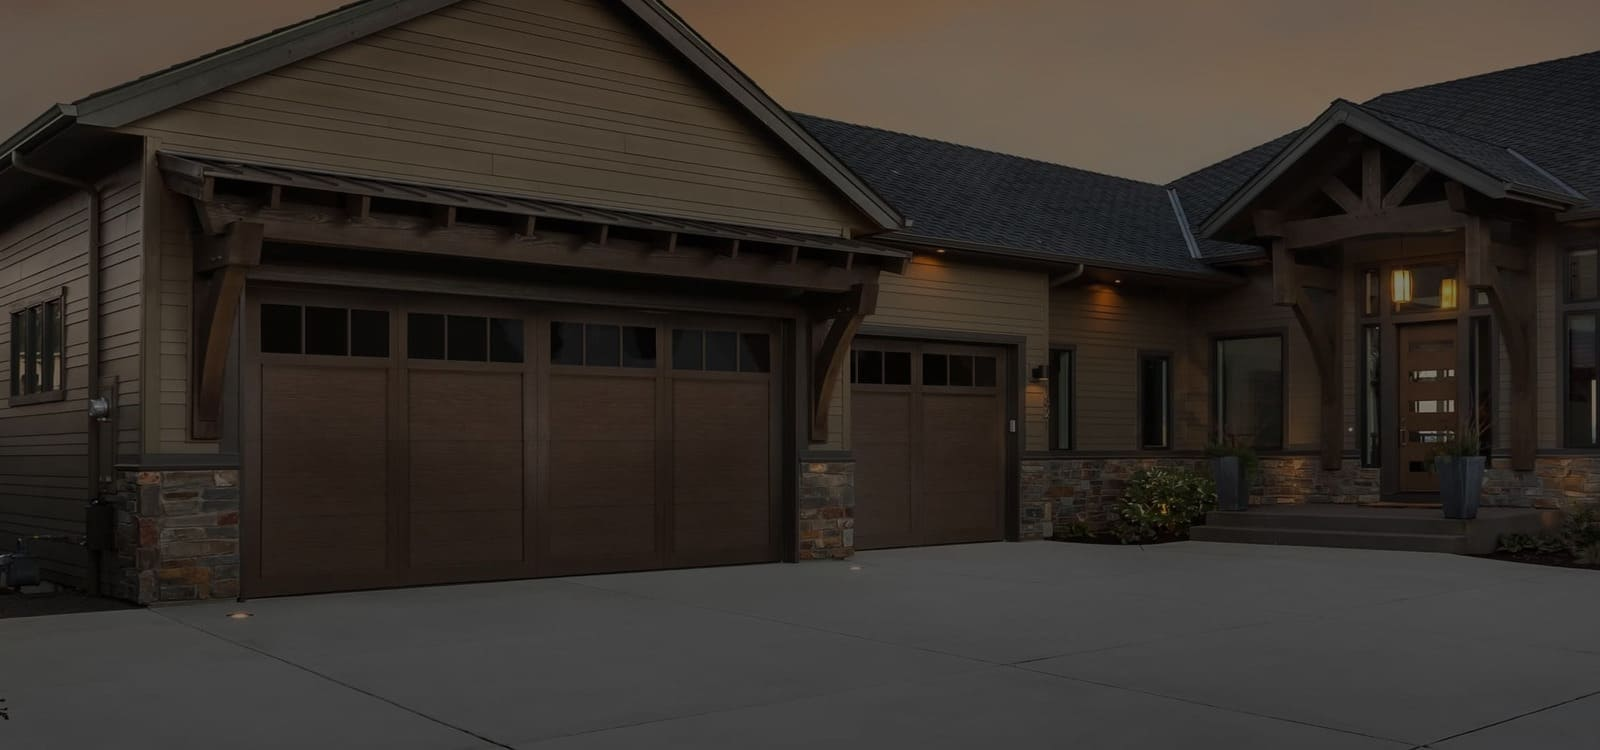 West Jordan Garage Door Repair